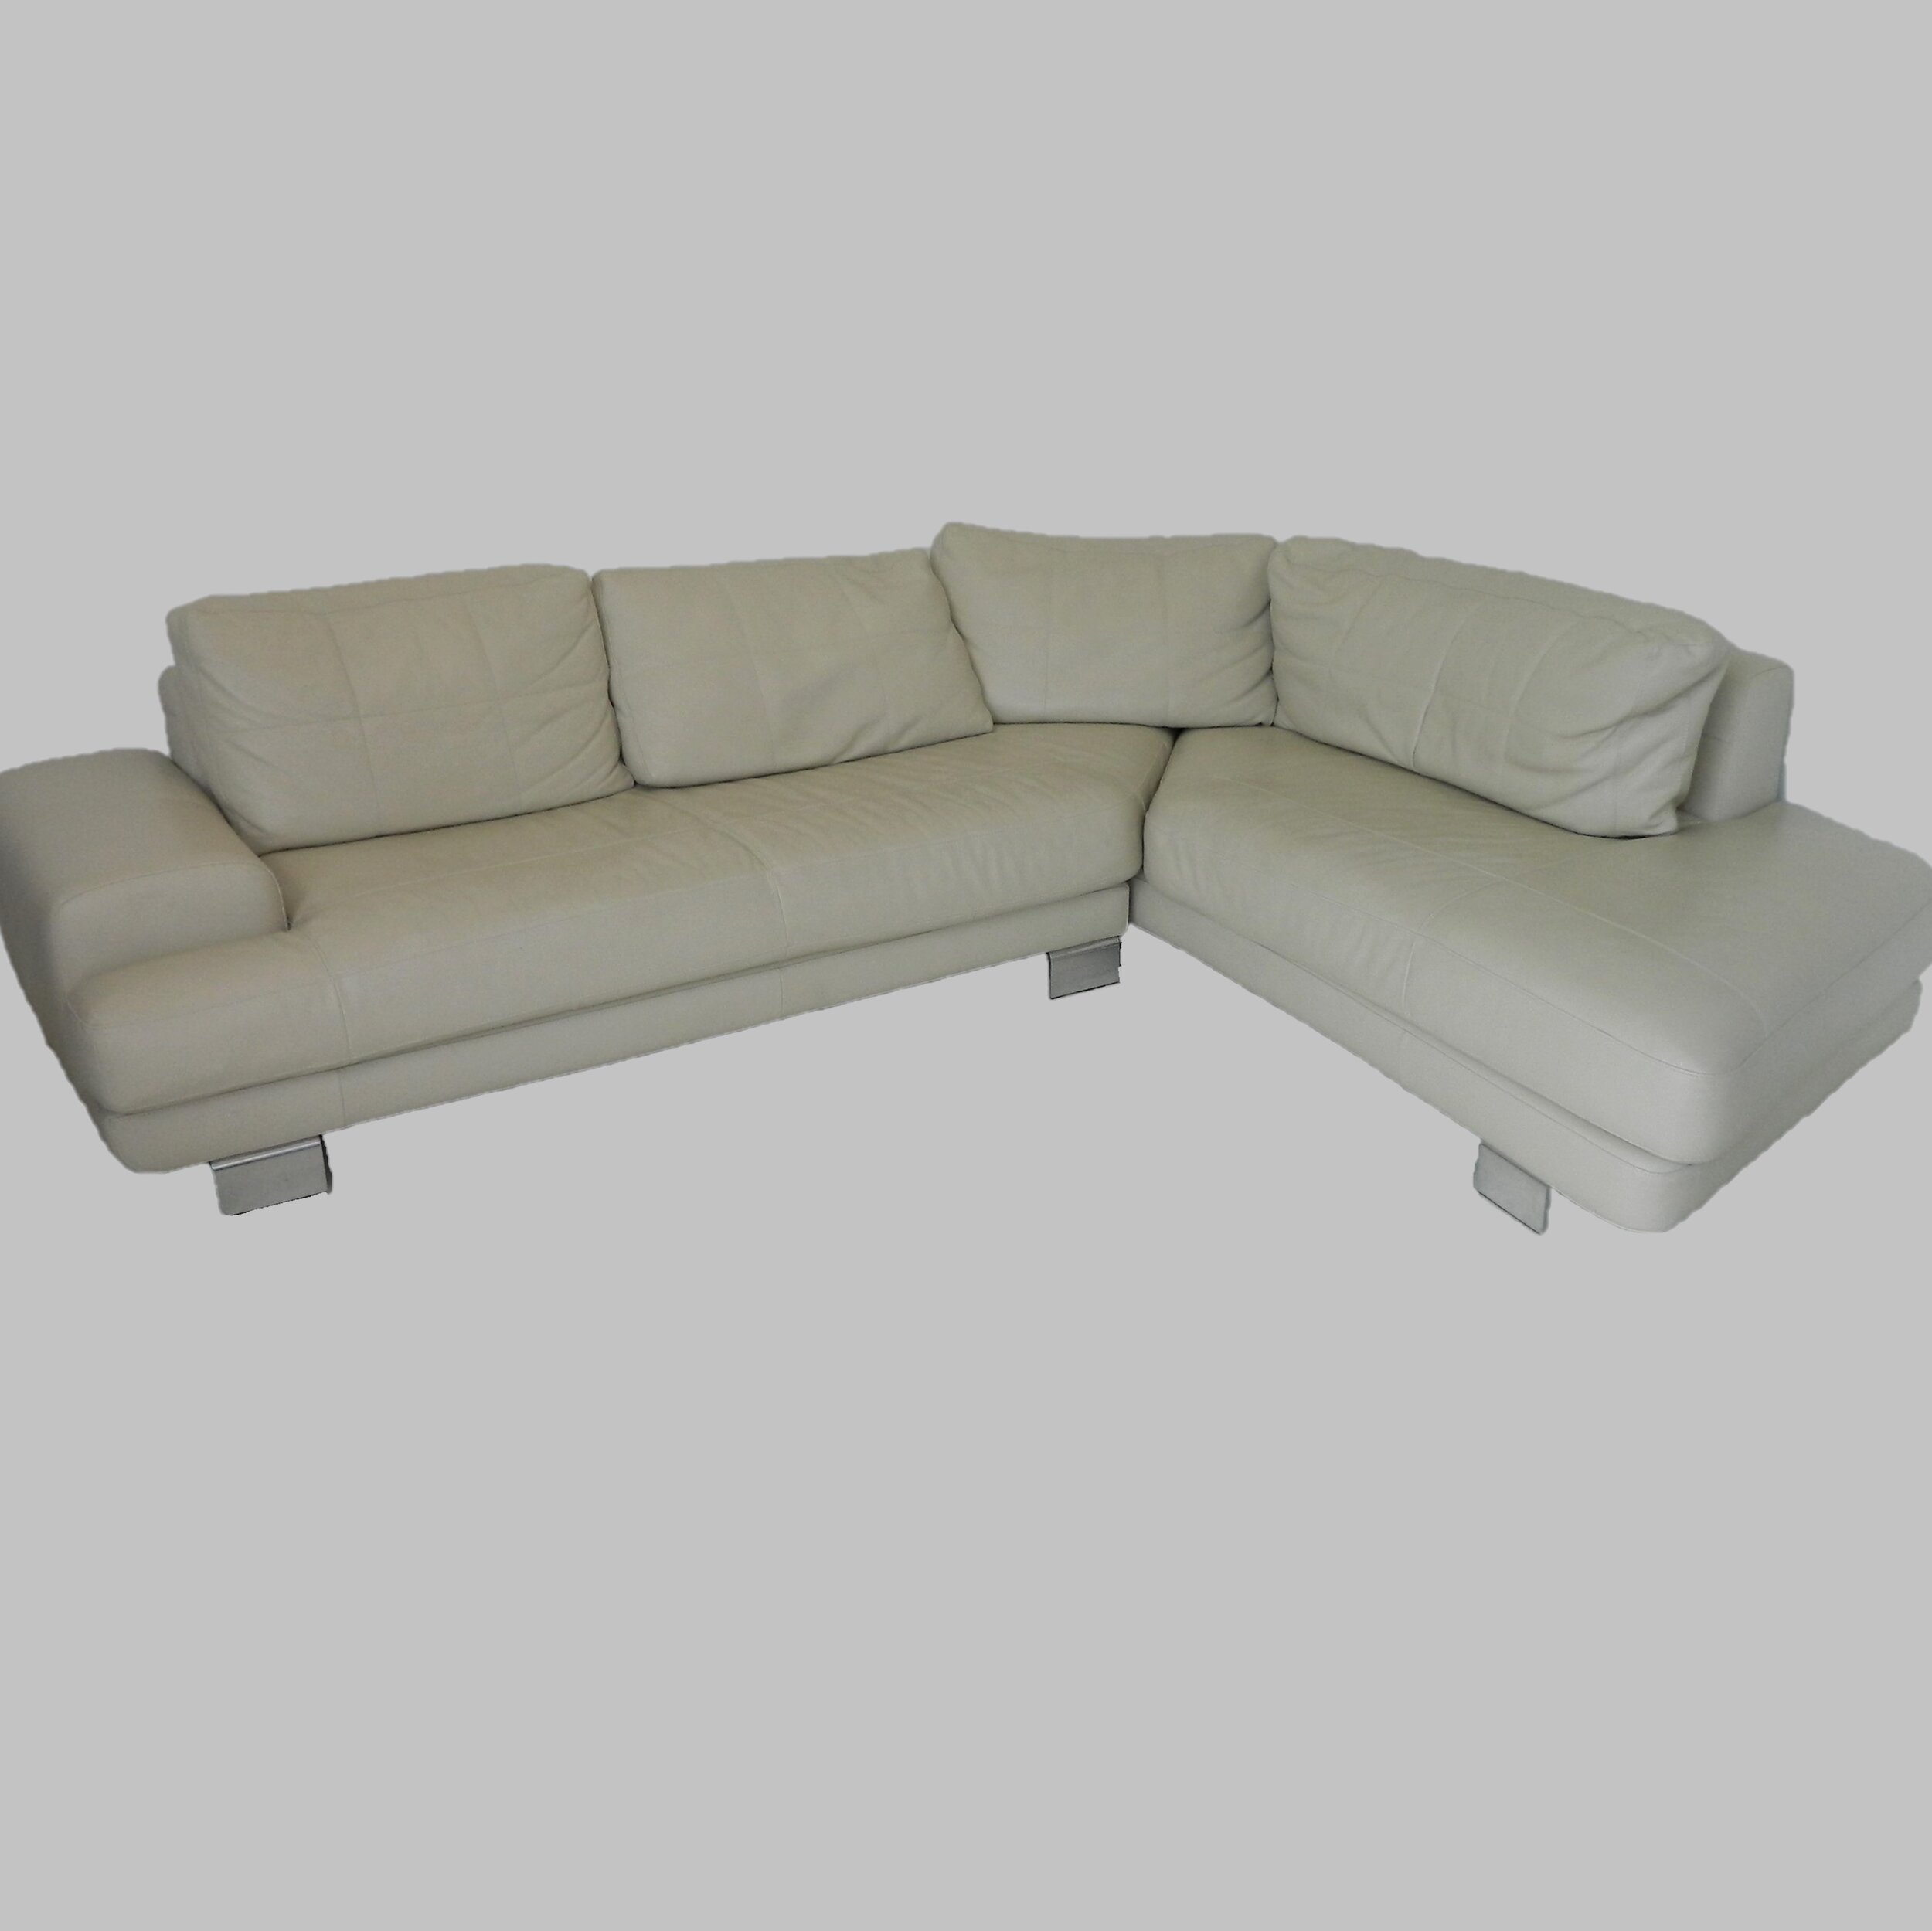 Cantoni 2 Piece Cream Leather Sectional